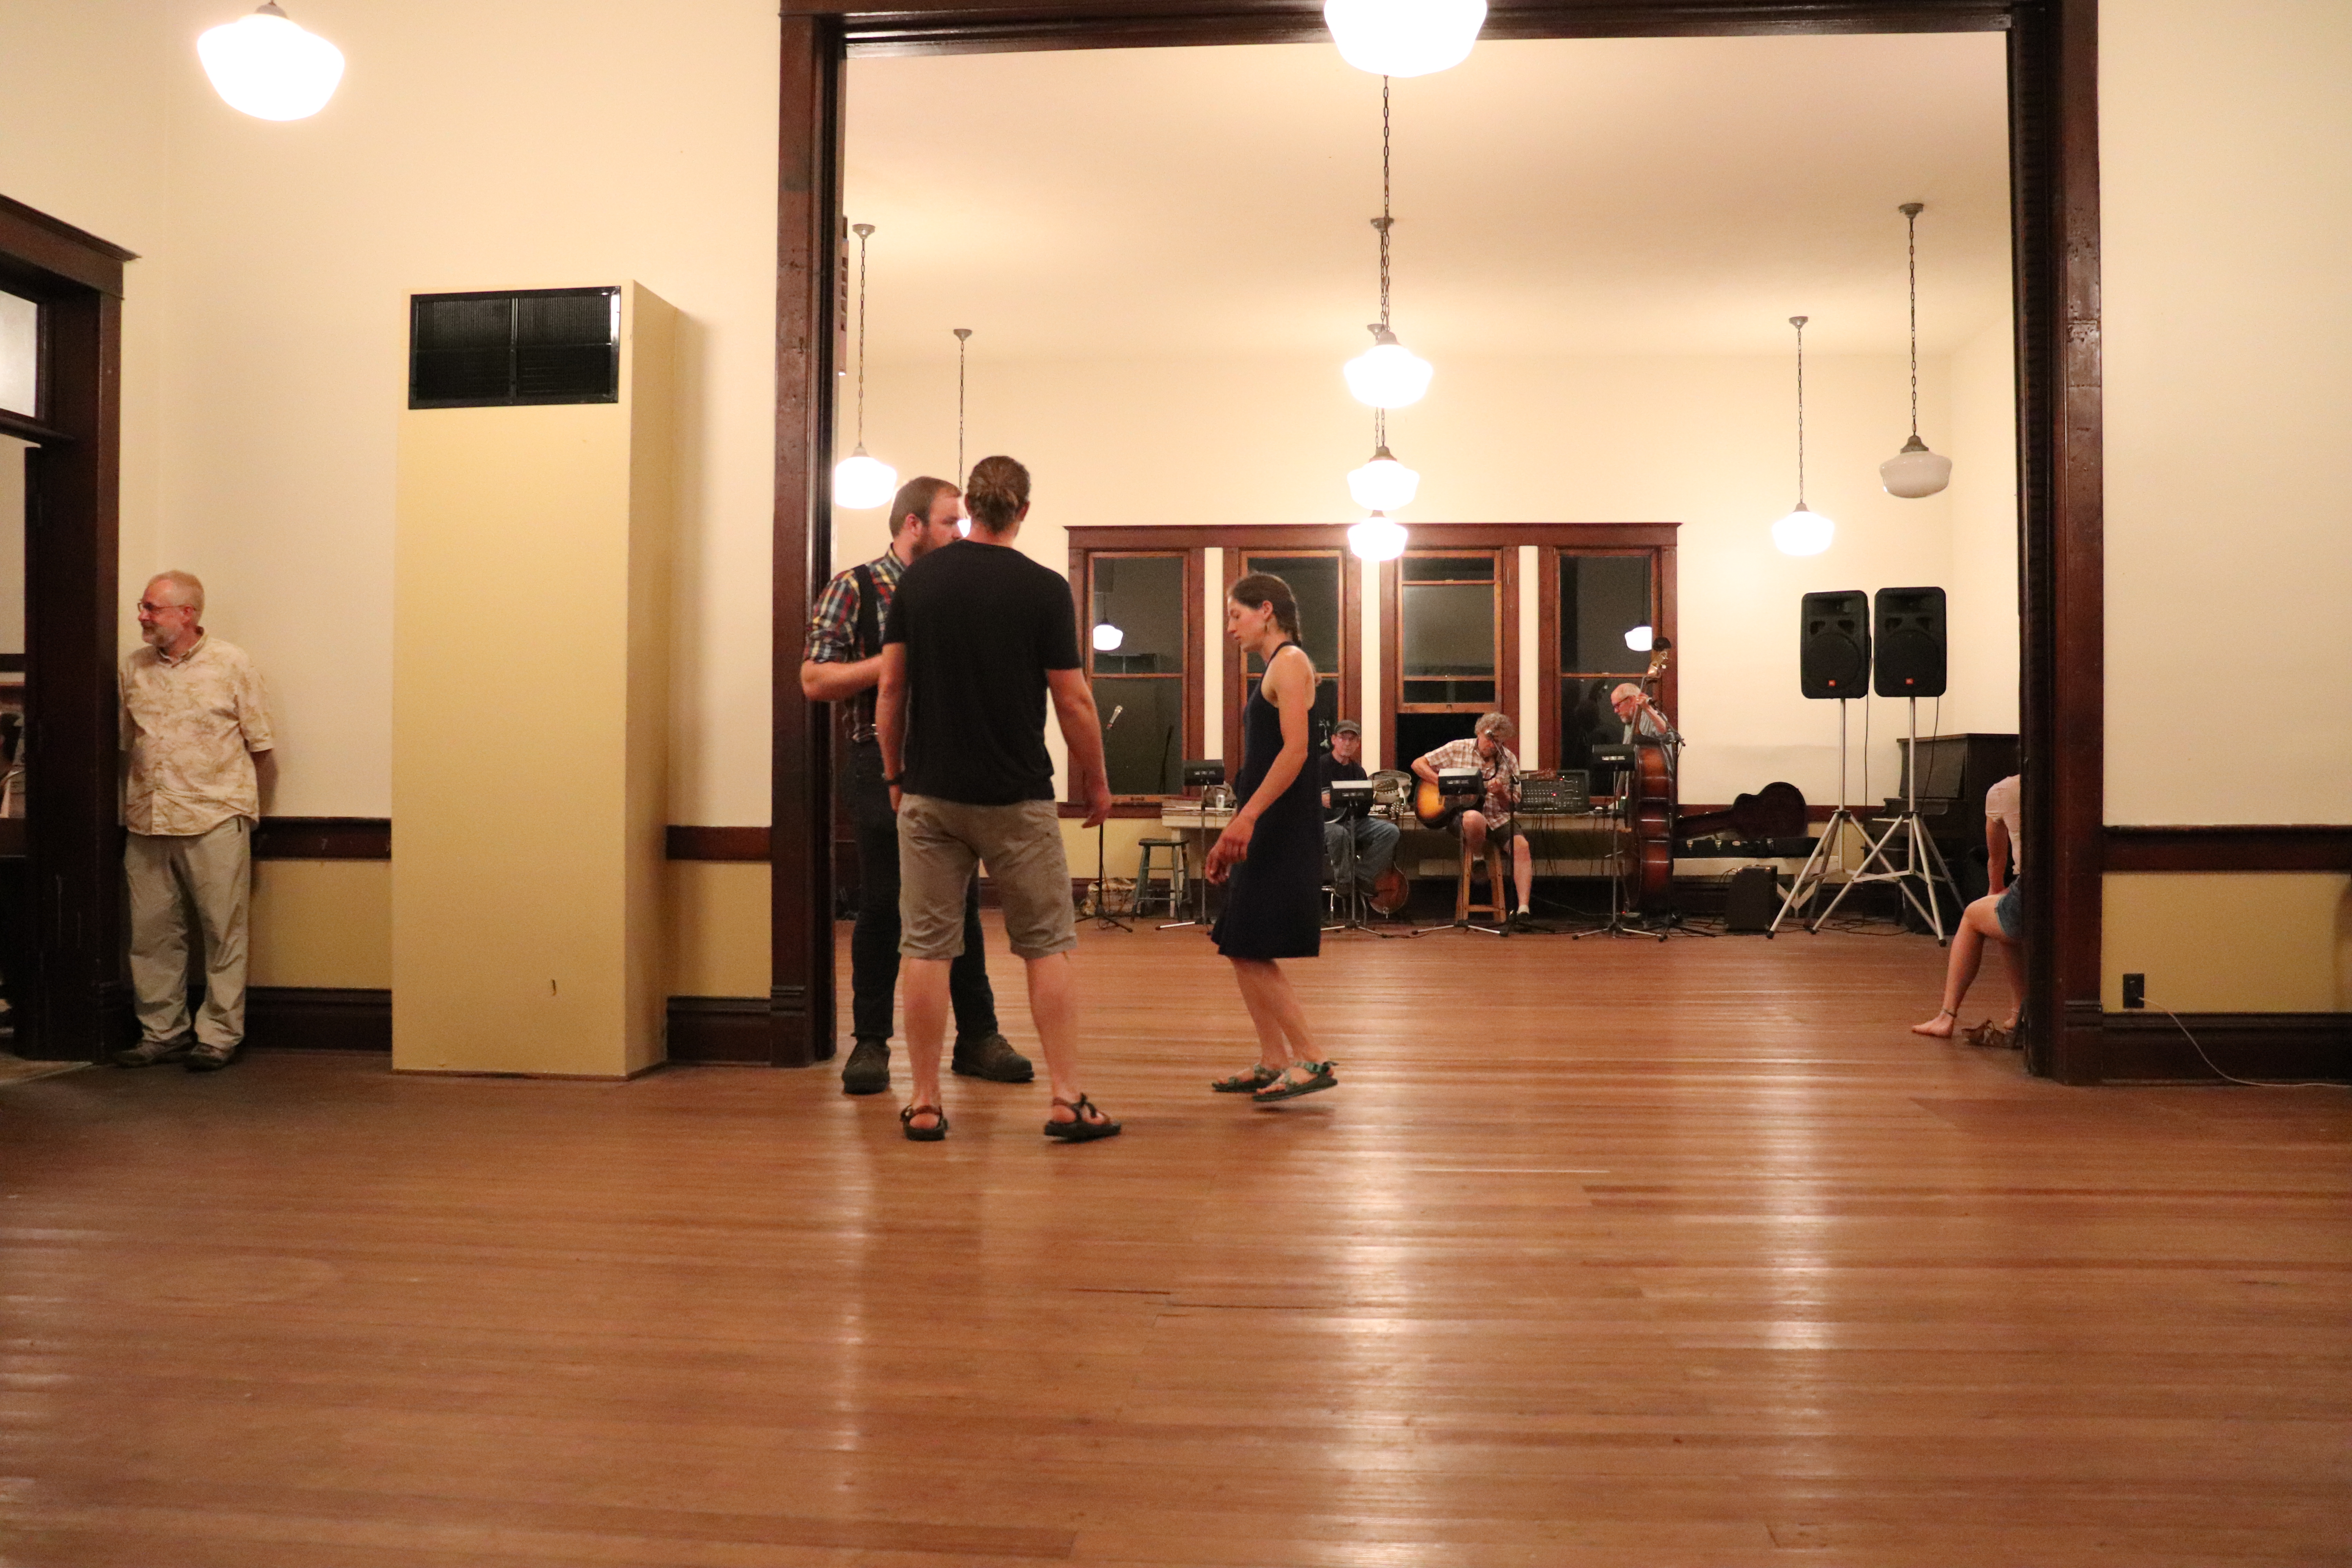 A couple teaches a young man to dance during a break in music.